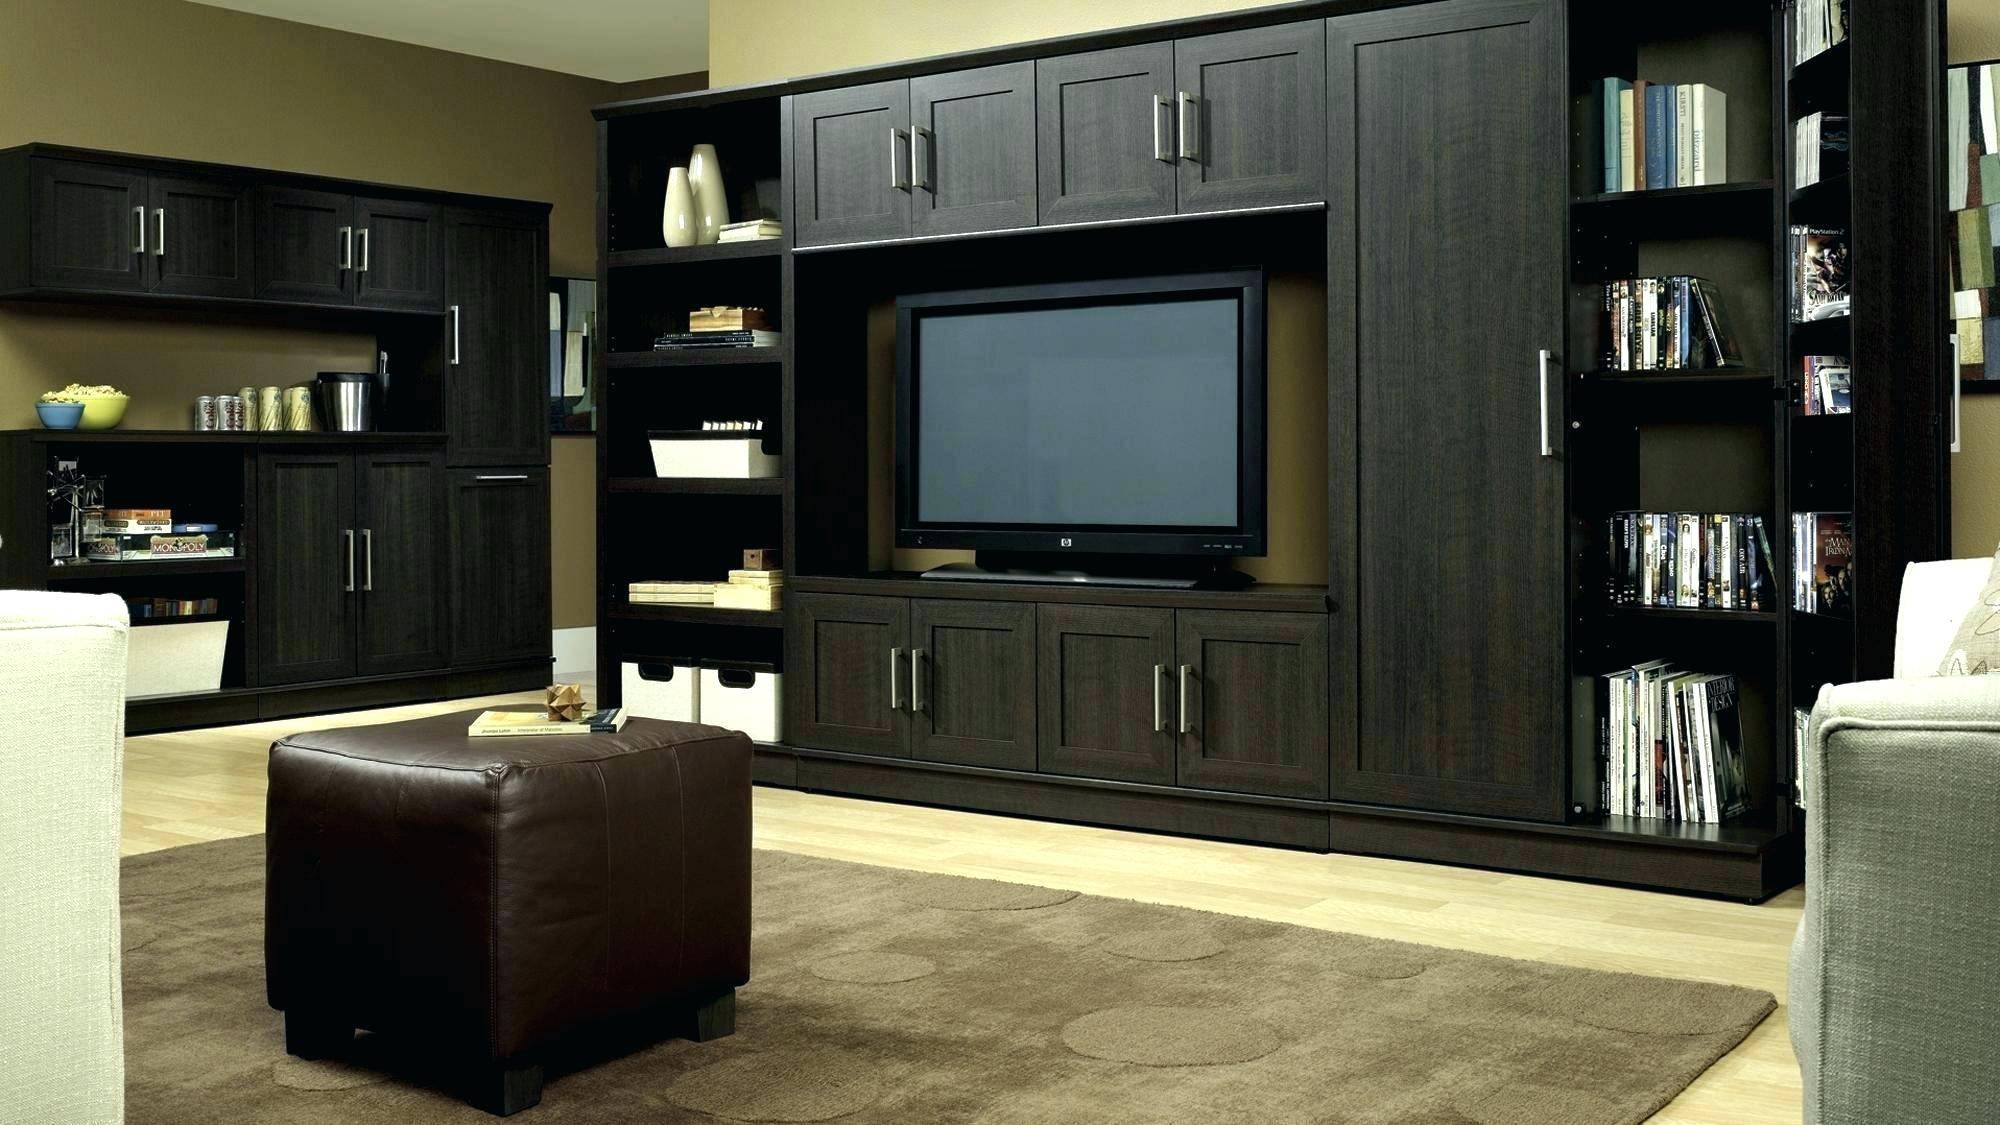 Tv Stand : Tv Cabinet And Bookshelf 72 Enchanting Cool Tv Stand Intended For Tv Stands And Bookshelf (View 9 of 15)